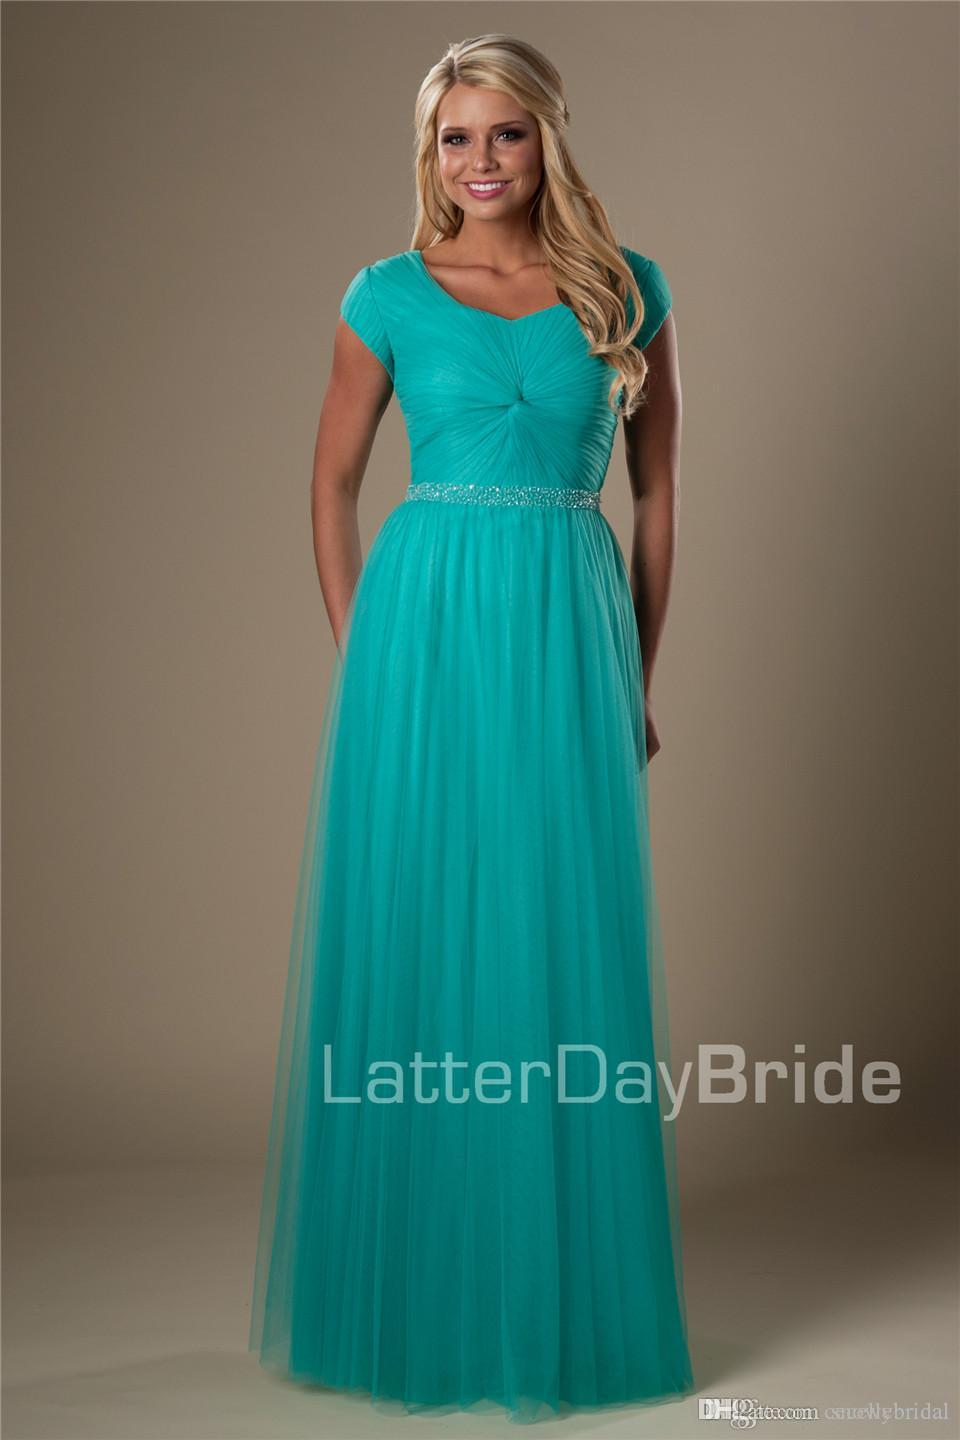 7fa137eee45f7 Turquoise Tulle Long Modest Bridesmaid Dresses With Short Sleeves A-line  Wed Party Dresses Cheap Bridesmaid Robes Formal Country Western